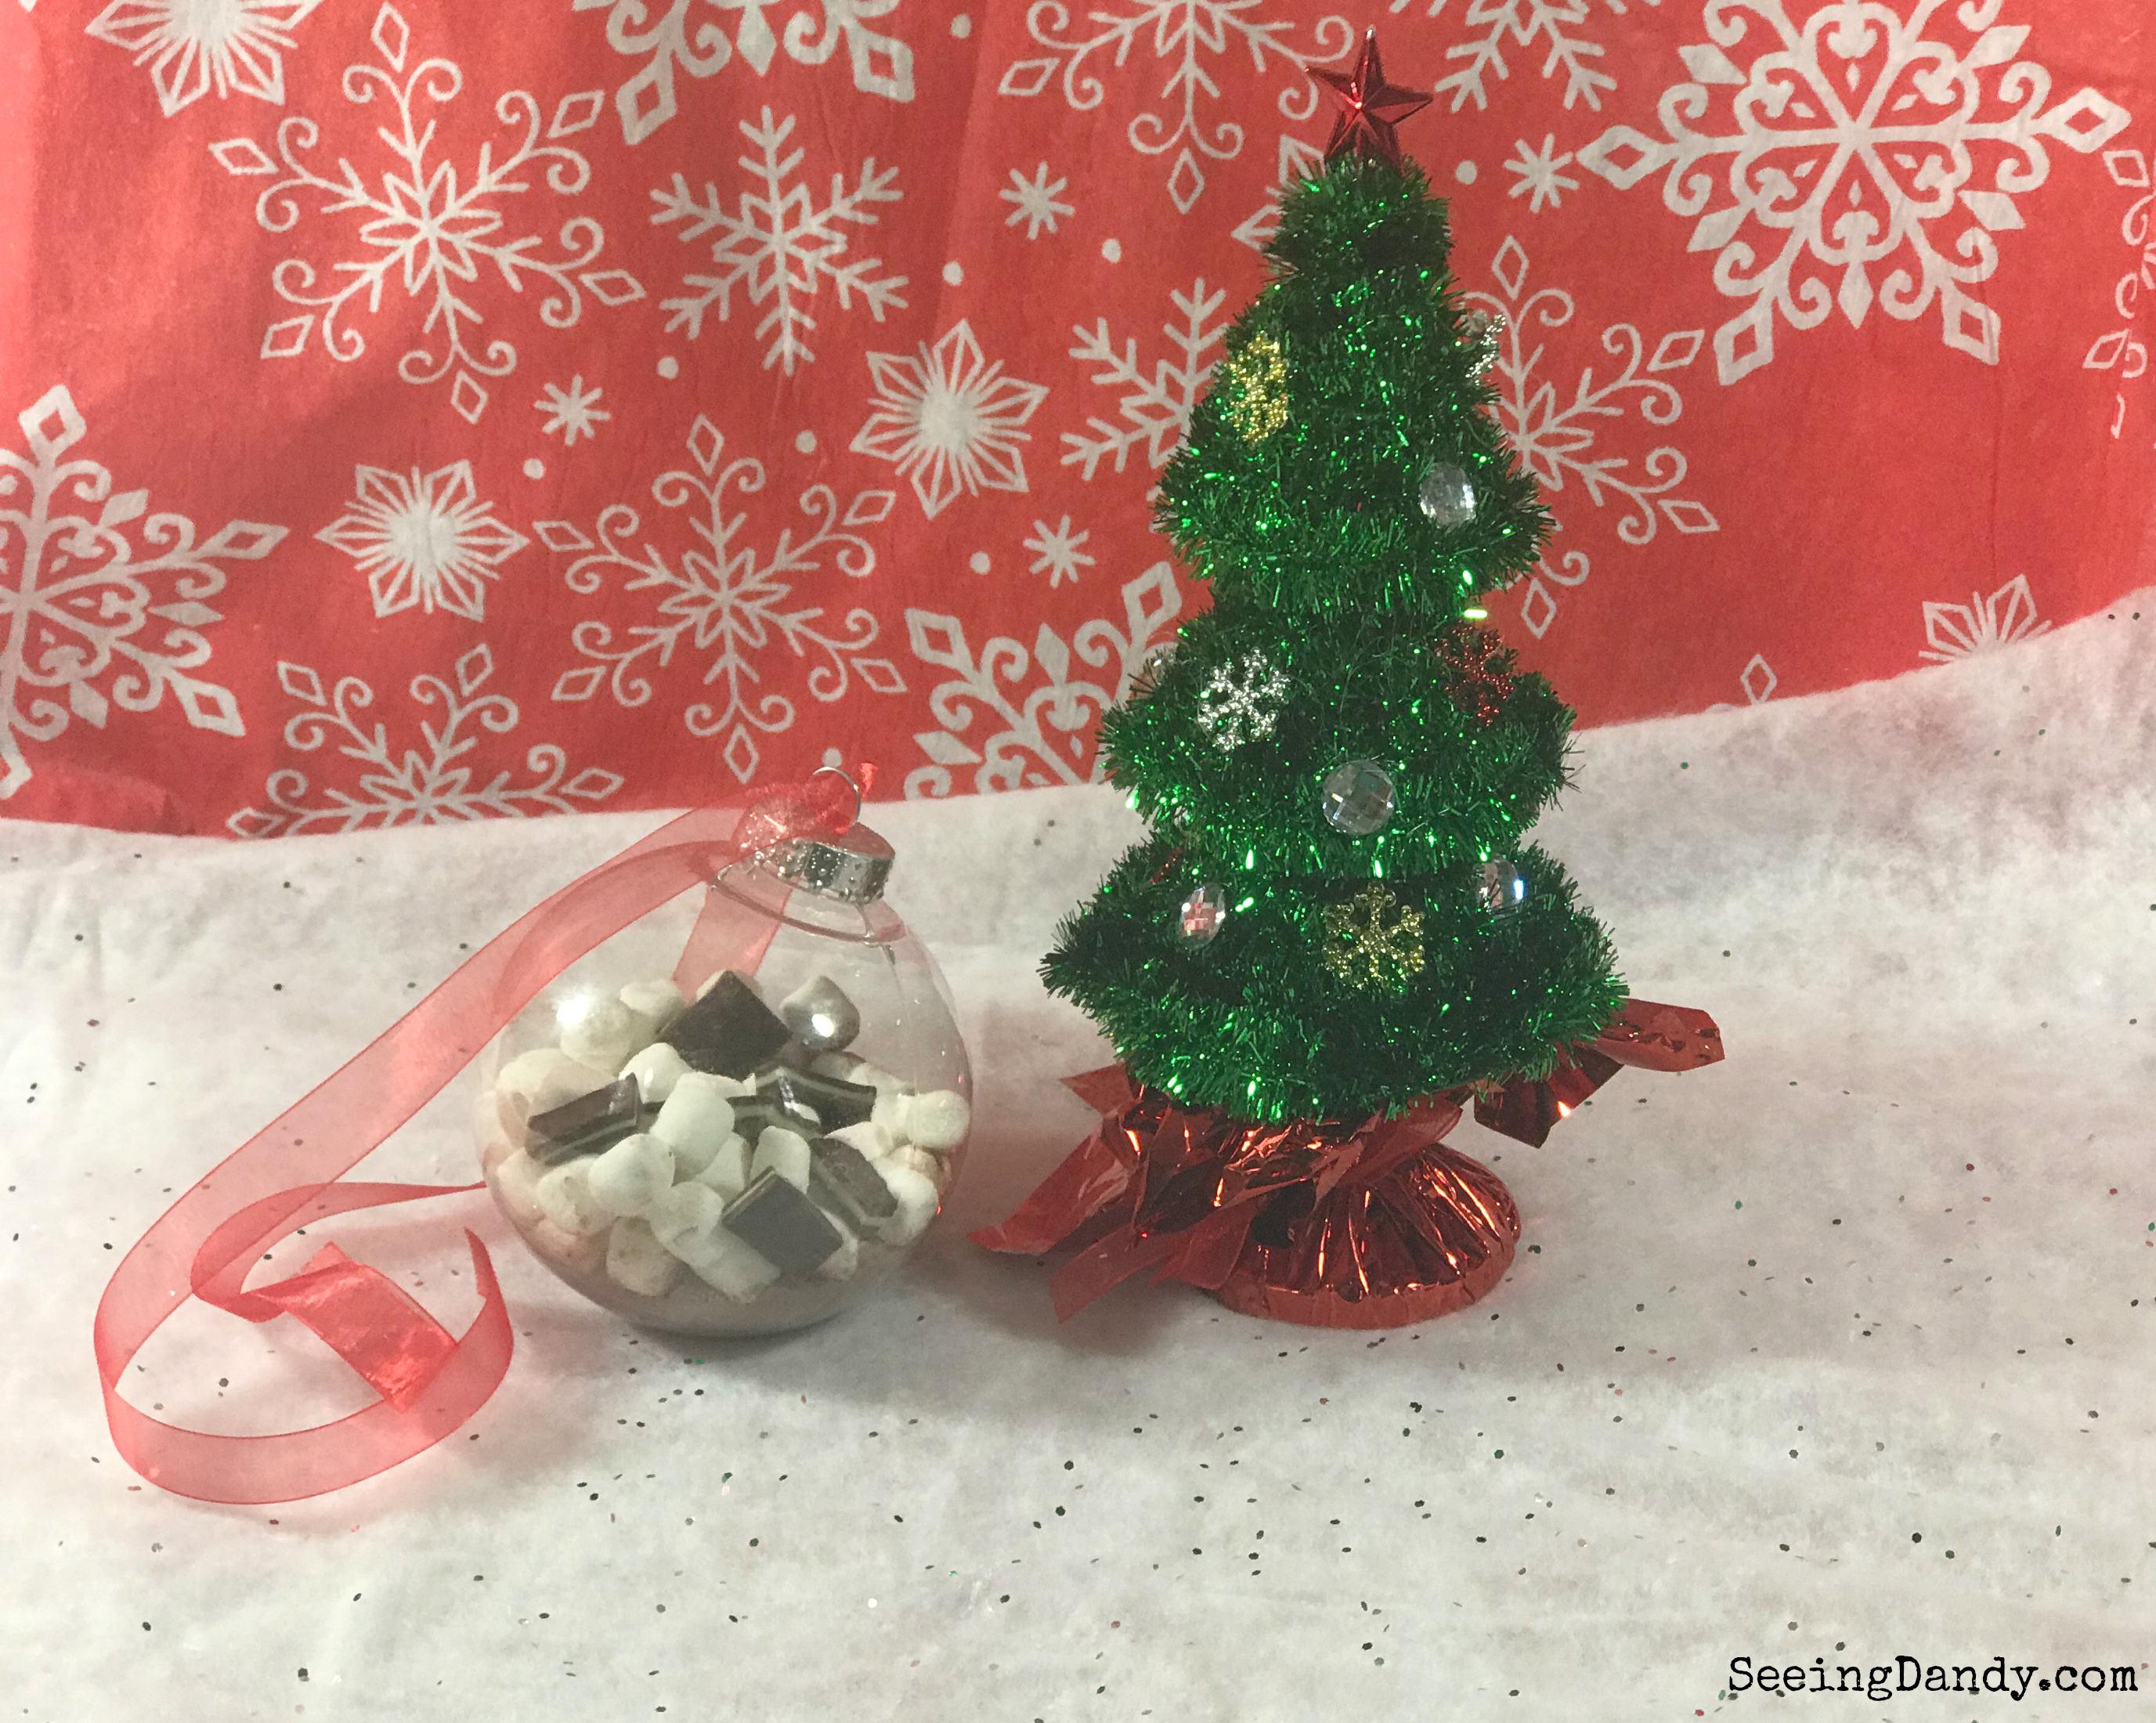 Miniature decorated Christmas tree with snowflake background and Hot Cocoa Mix Ornaments.